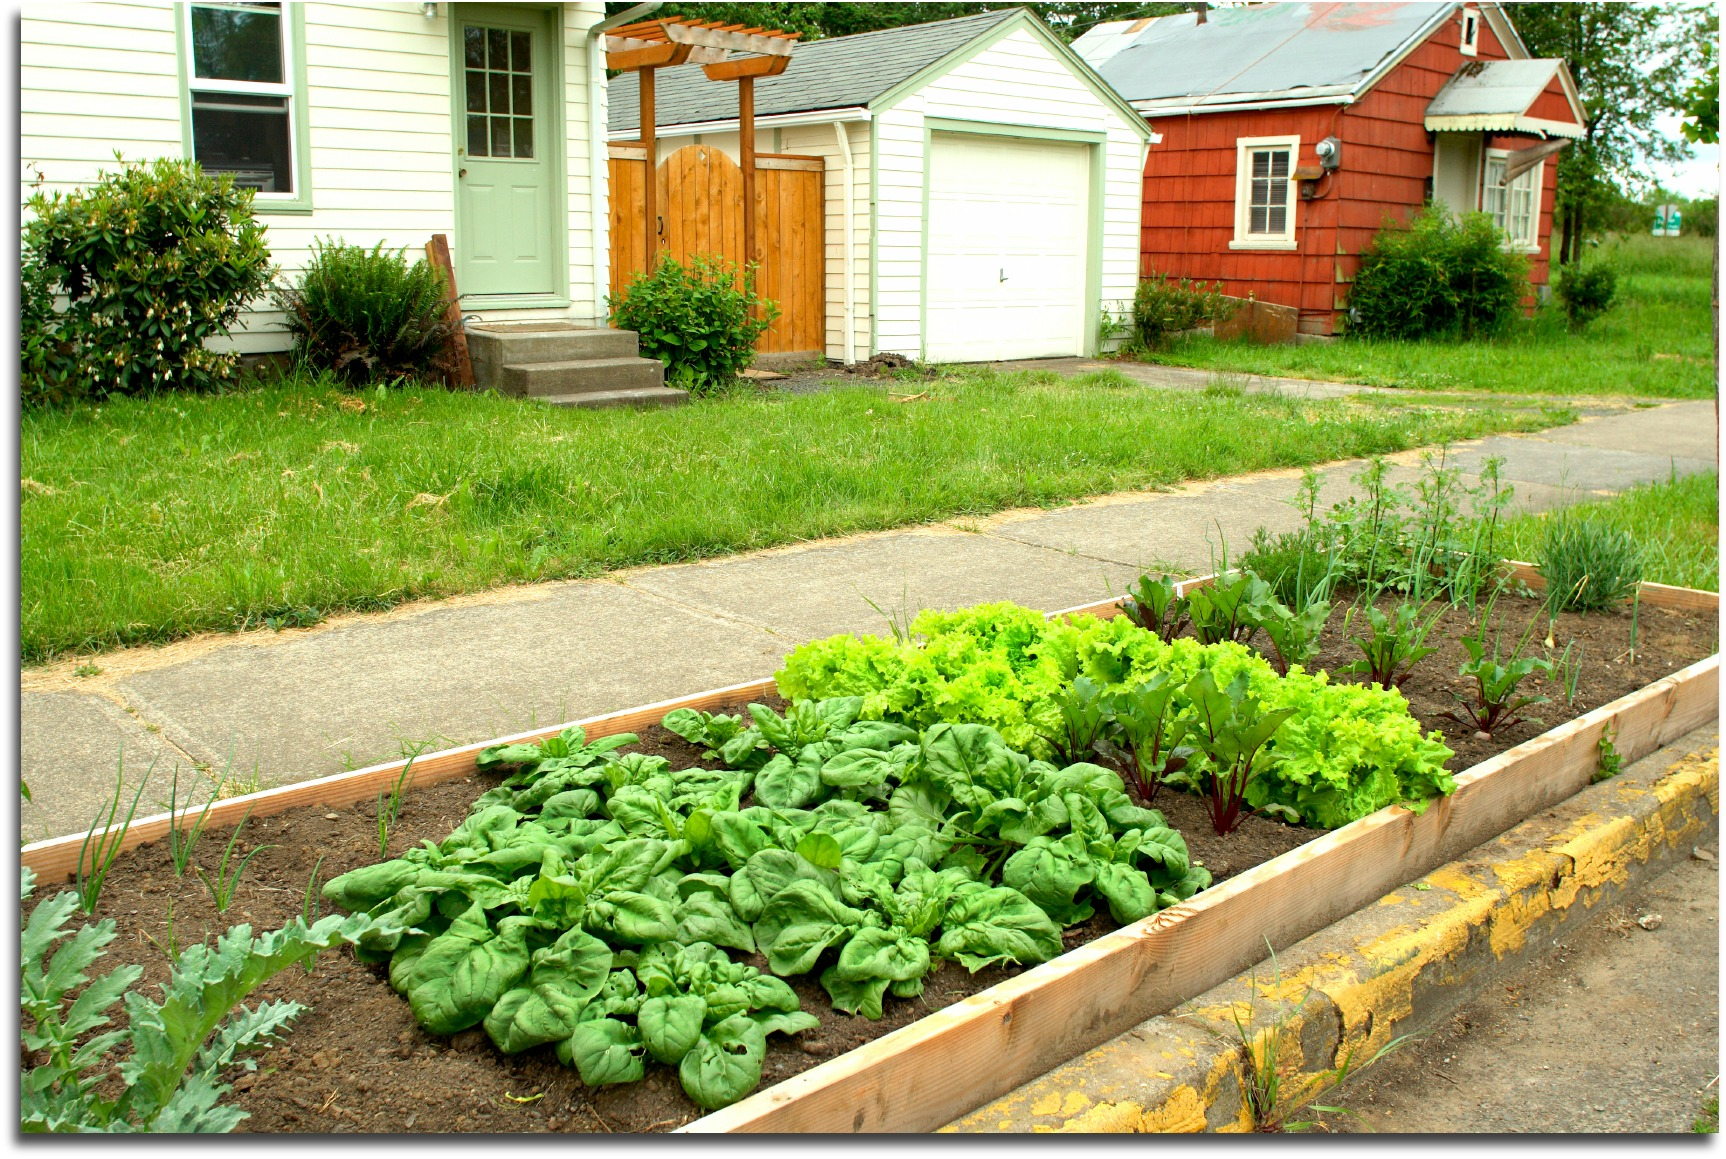 Garden Layout Ideas planning a vegetable garden layout for beginner gardeners